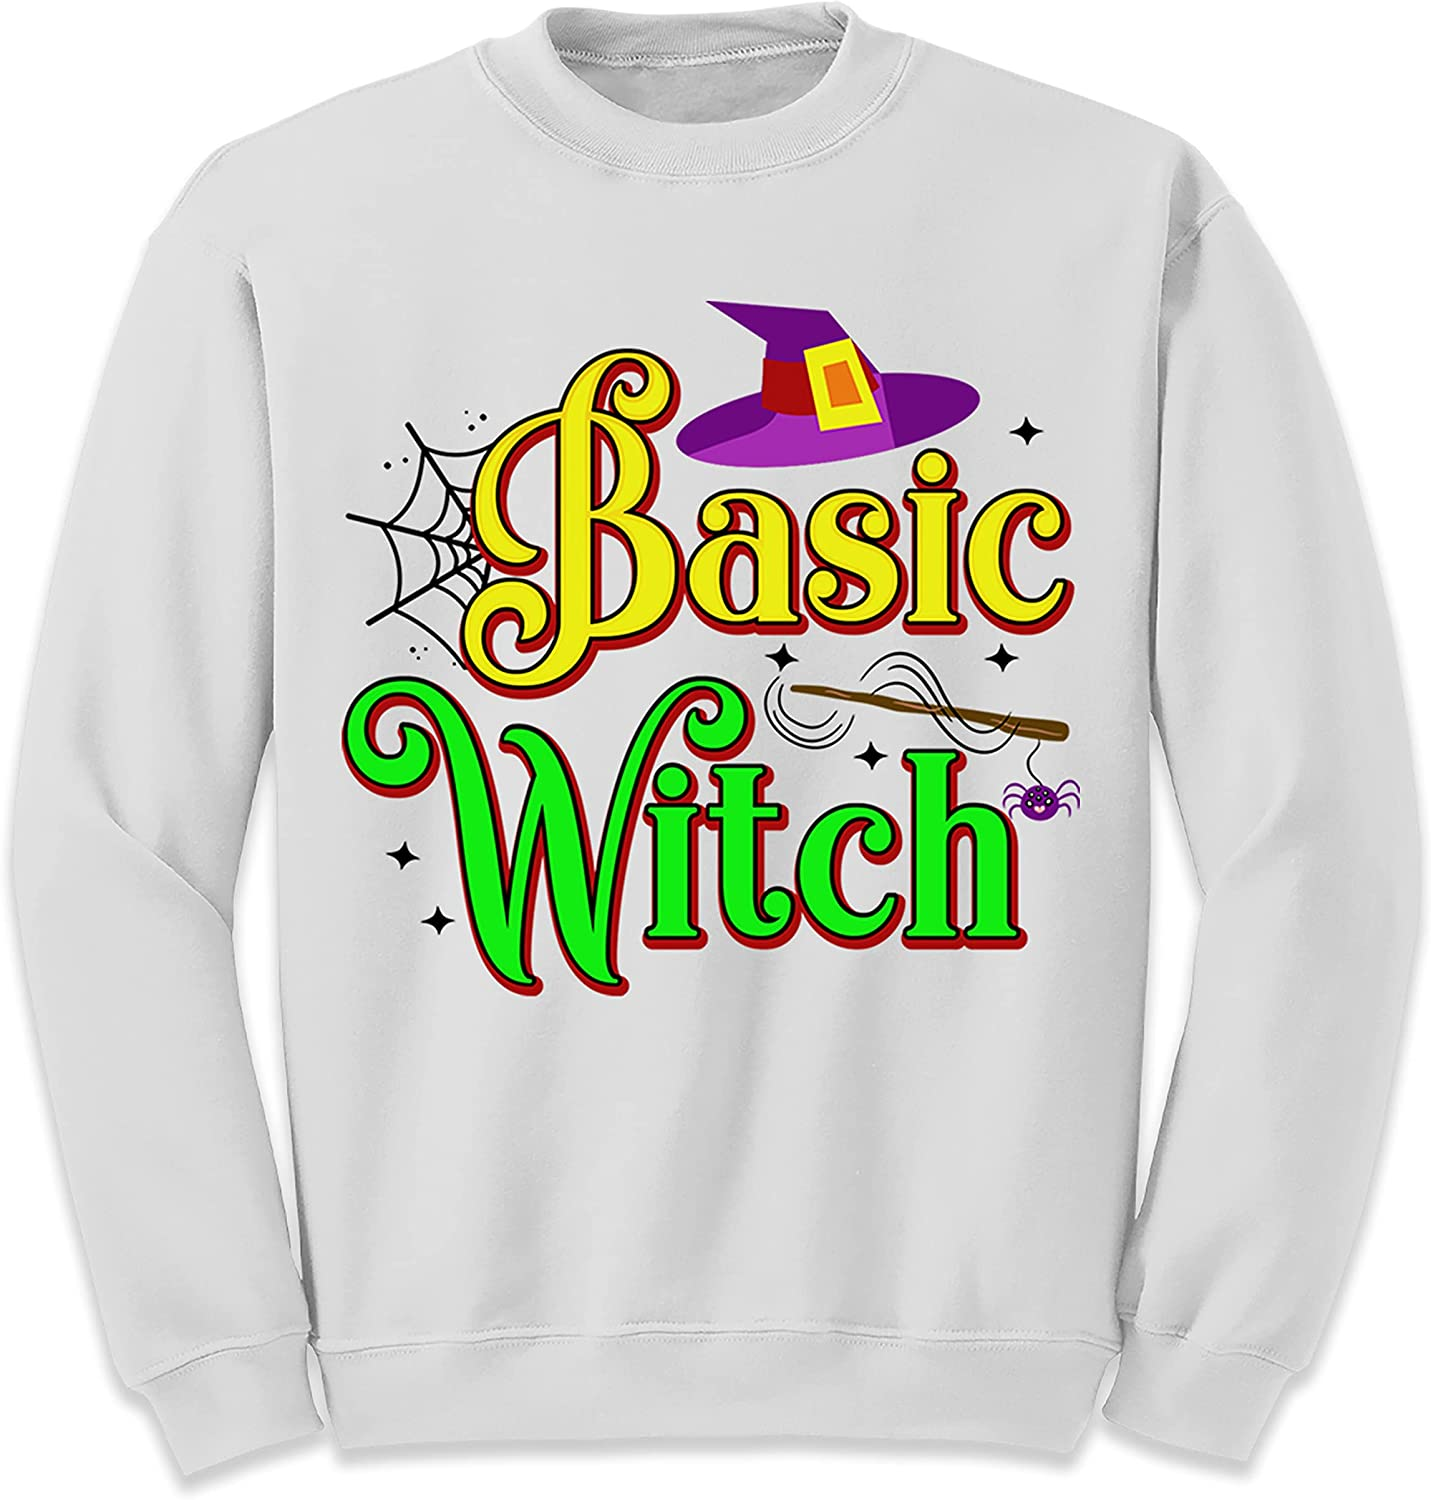 NACRE APPAREL Basic Witch Funny Halloween Max 75% OFF Pocus Hocus Ranking TOP5 Wome